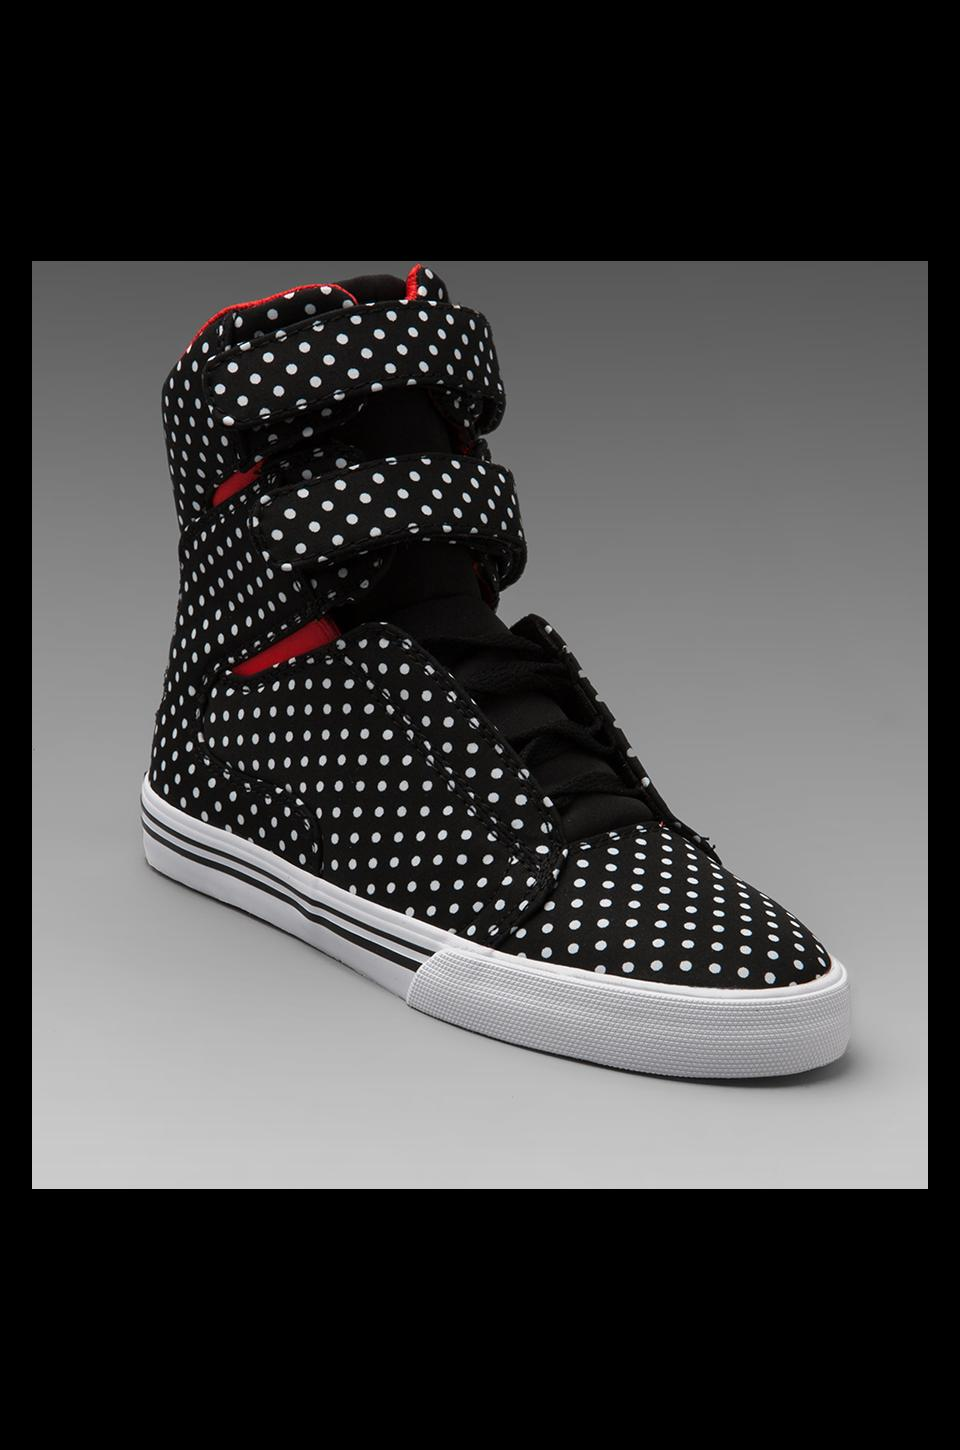 Supra Society Sneaker in Black/White Polka Dots